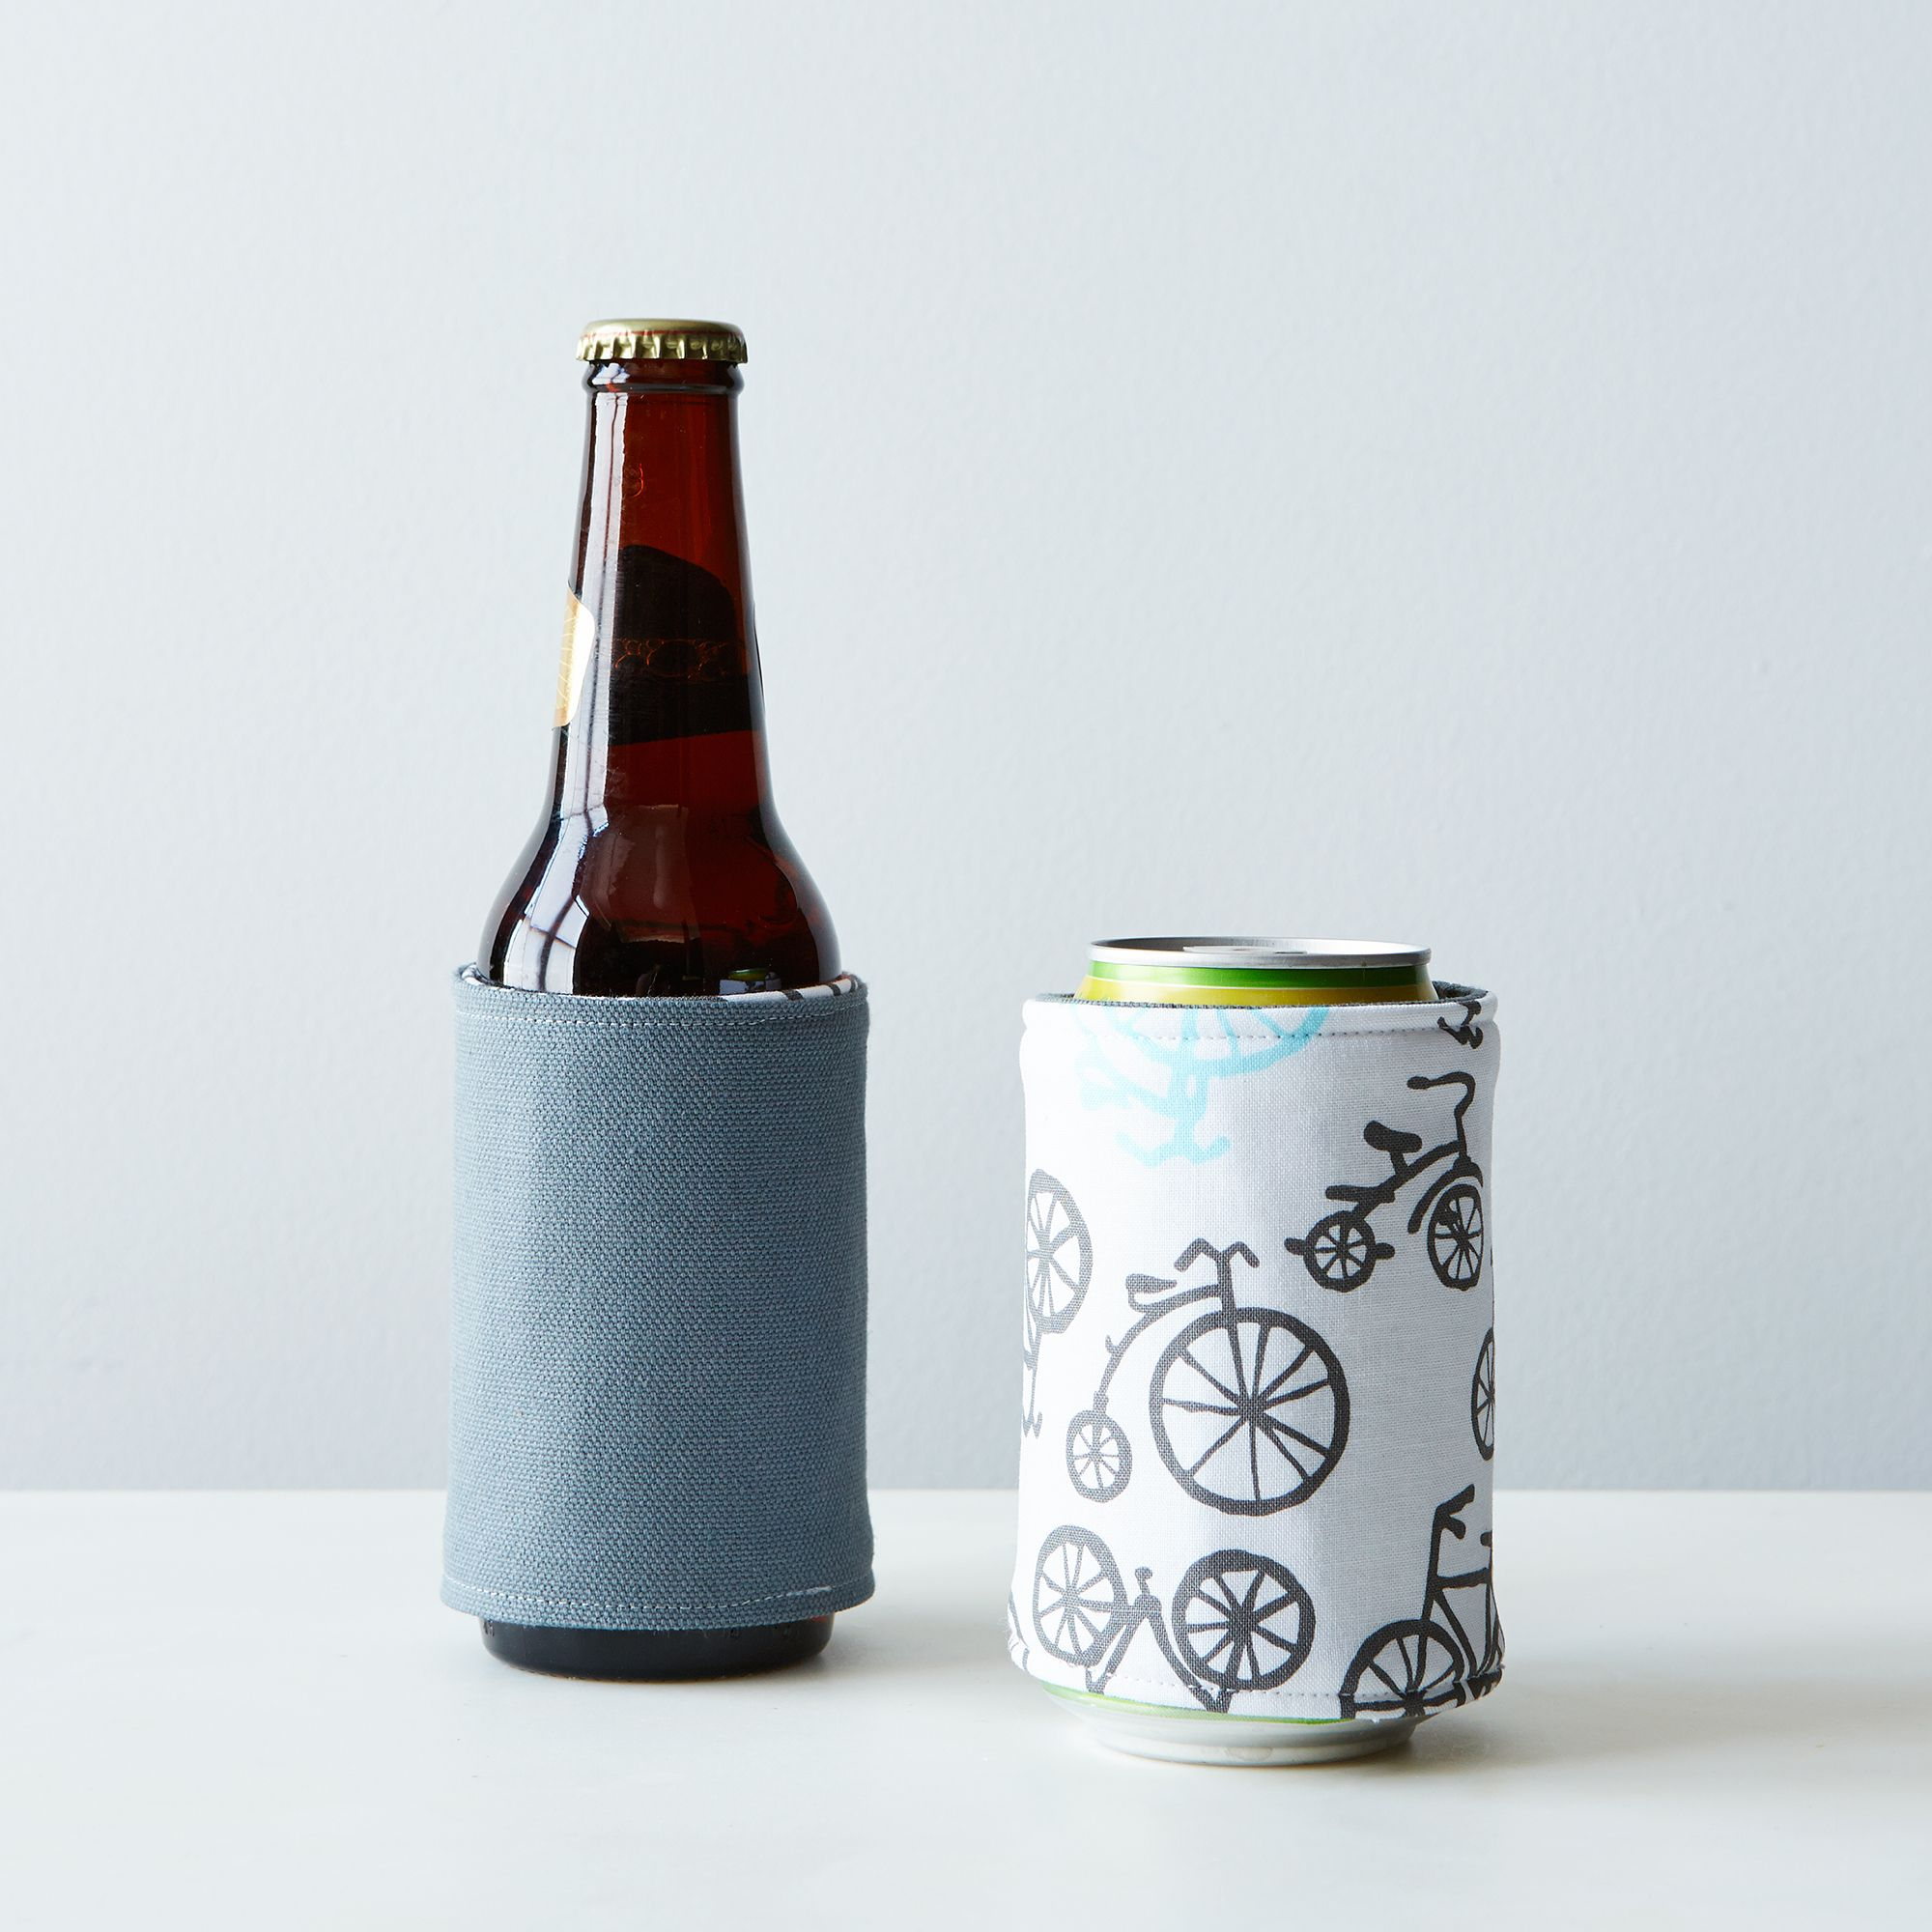 E30fd540-a0f6-11e5-a190-0ef7535729df--dot-and-army_reversible-can-bottle-koozie_2bikes_provisions_mark_weinberg_10-09-14_0523_silo